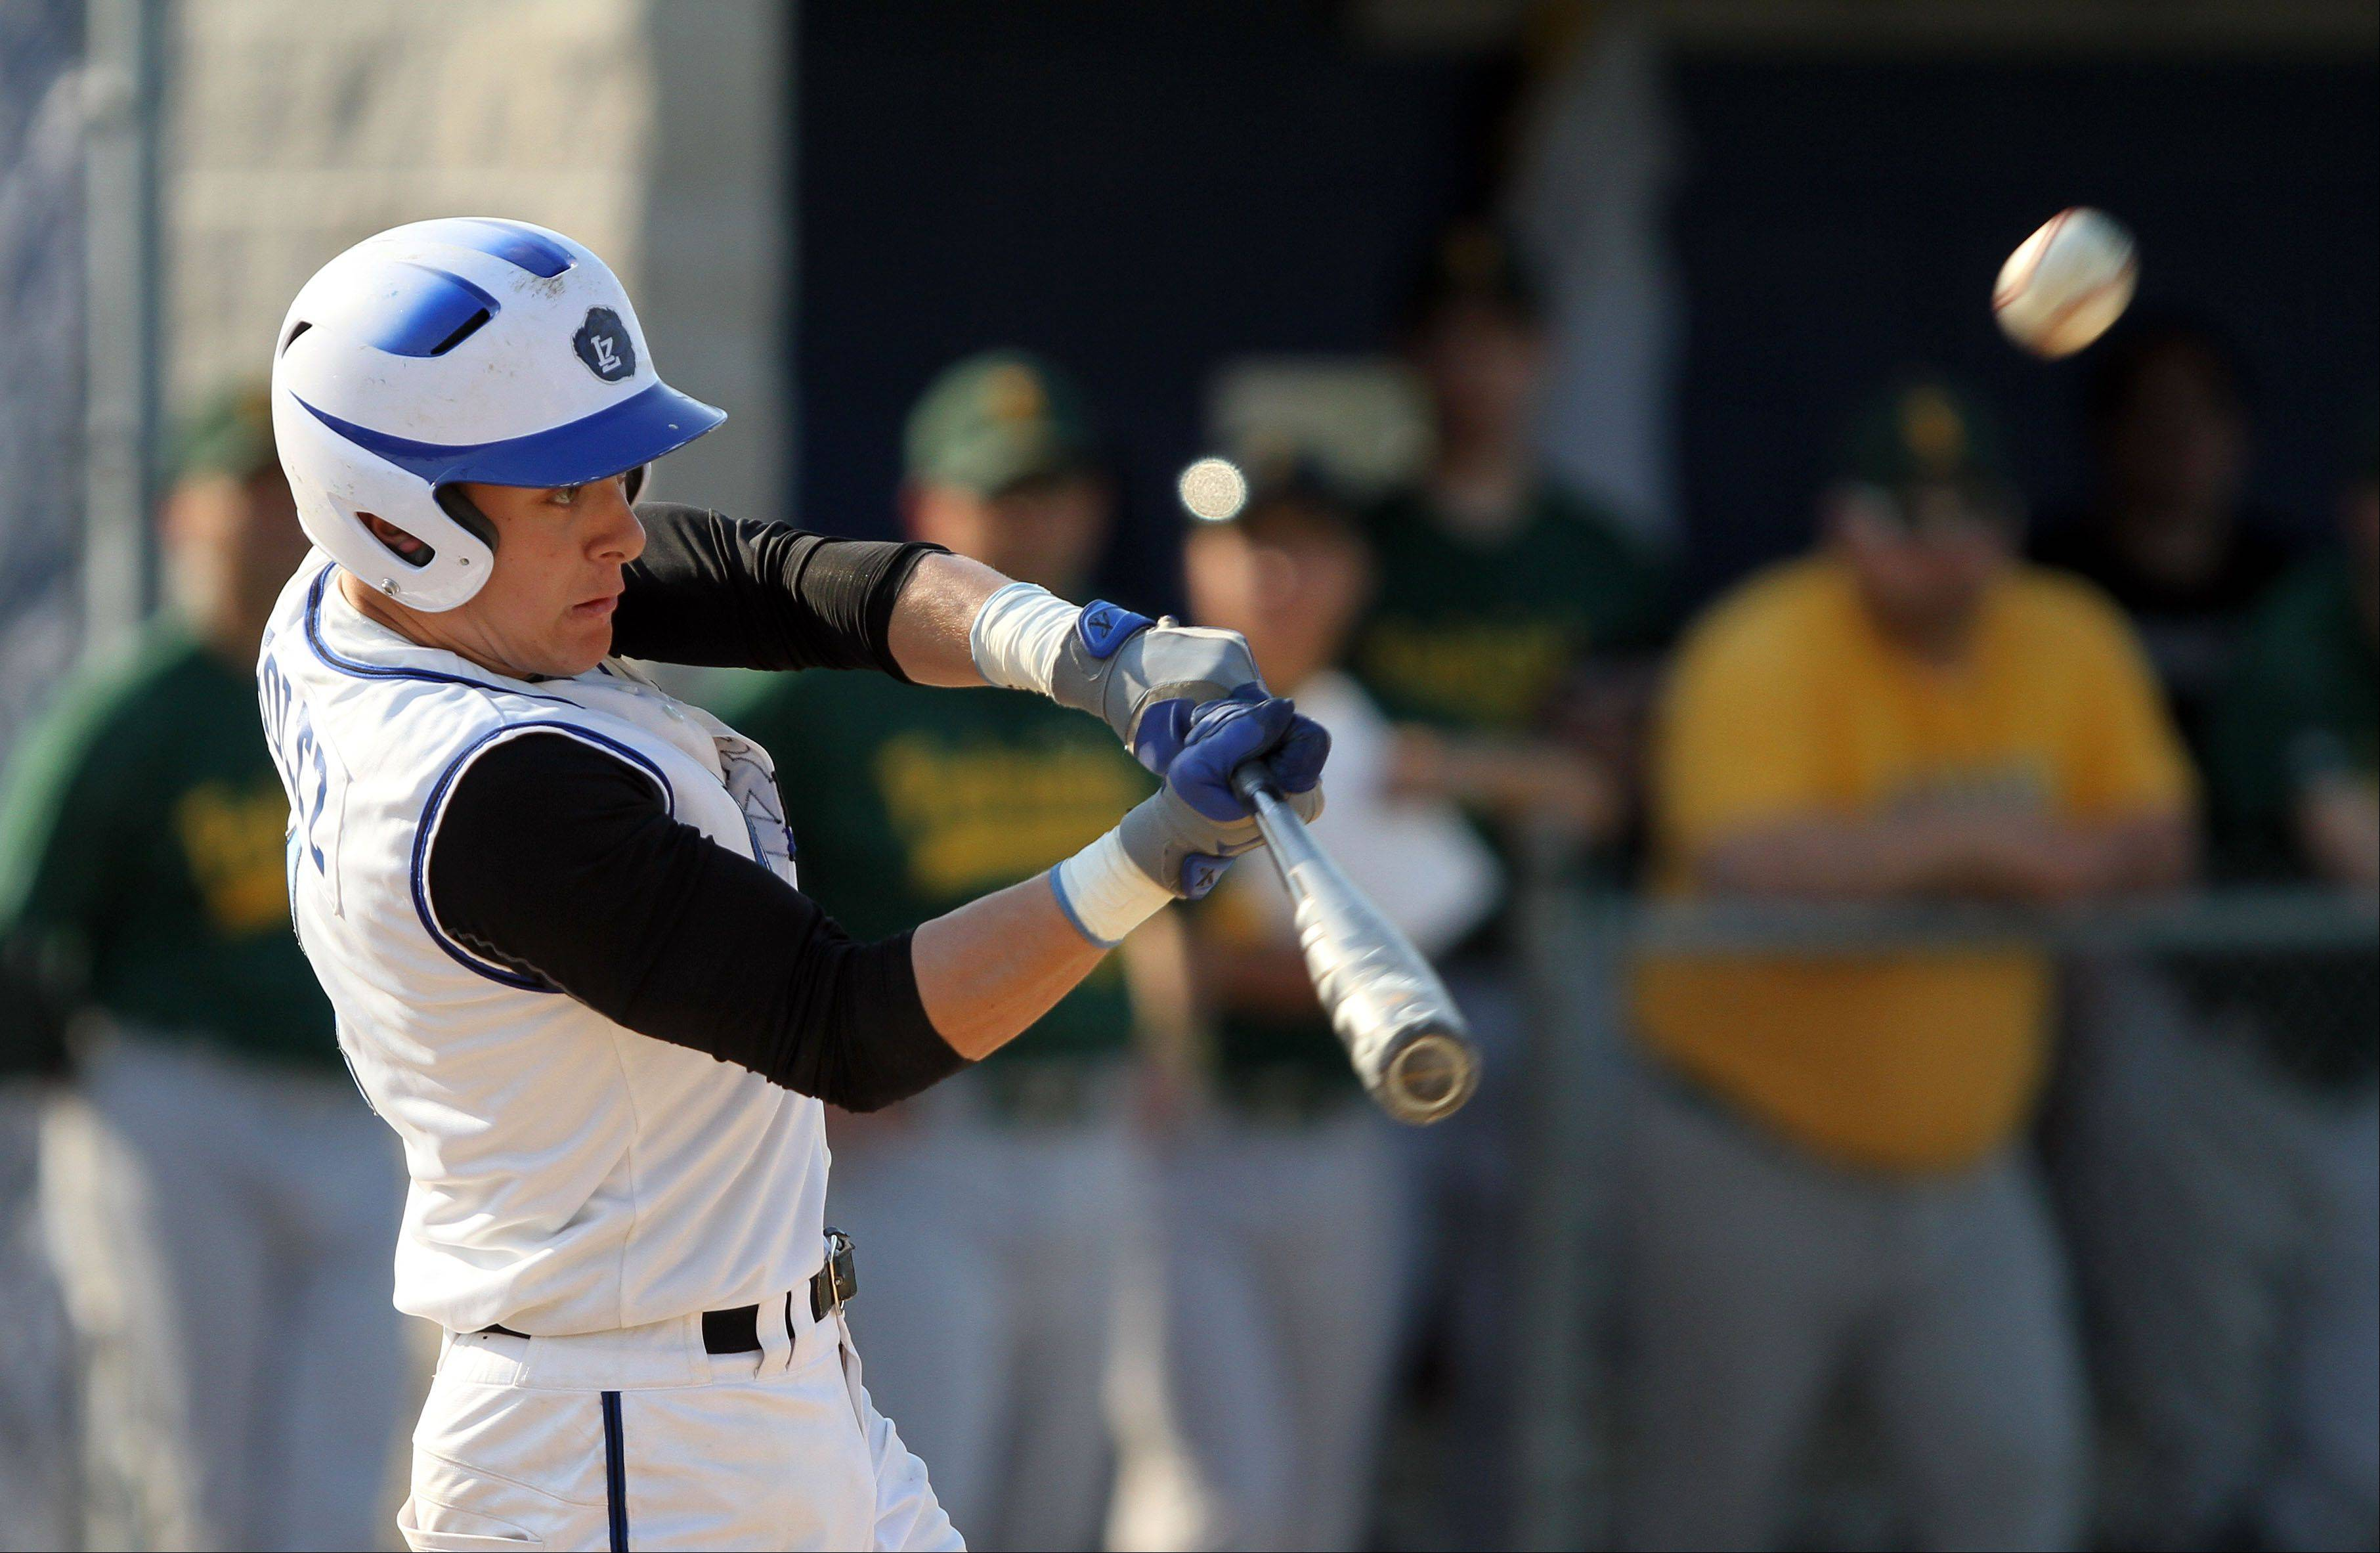 Lake Zurich's Joey Holtz connects for a triple against visiting Stevenson on Wednesday.